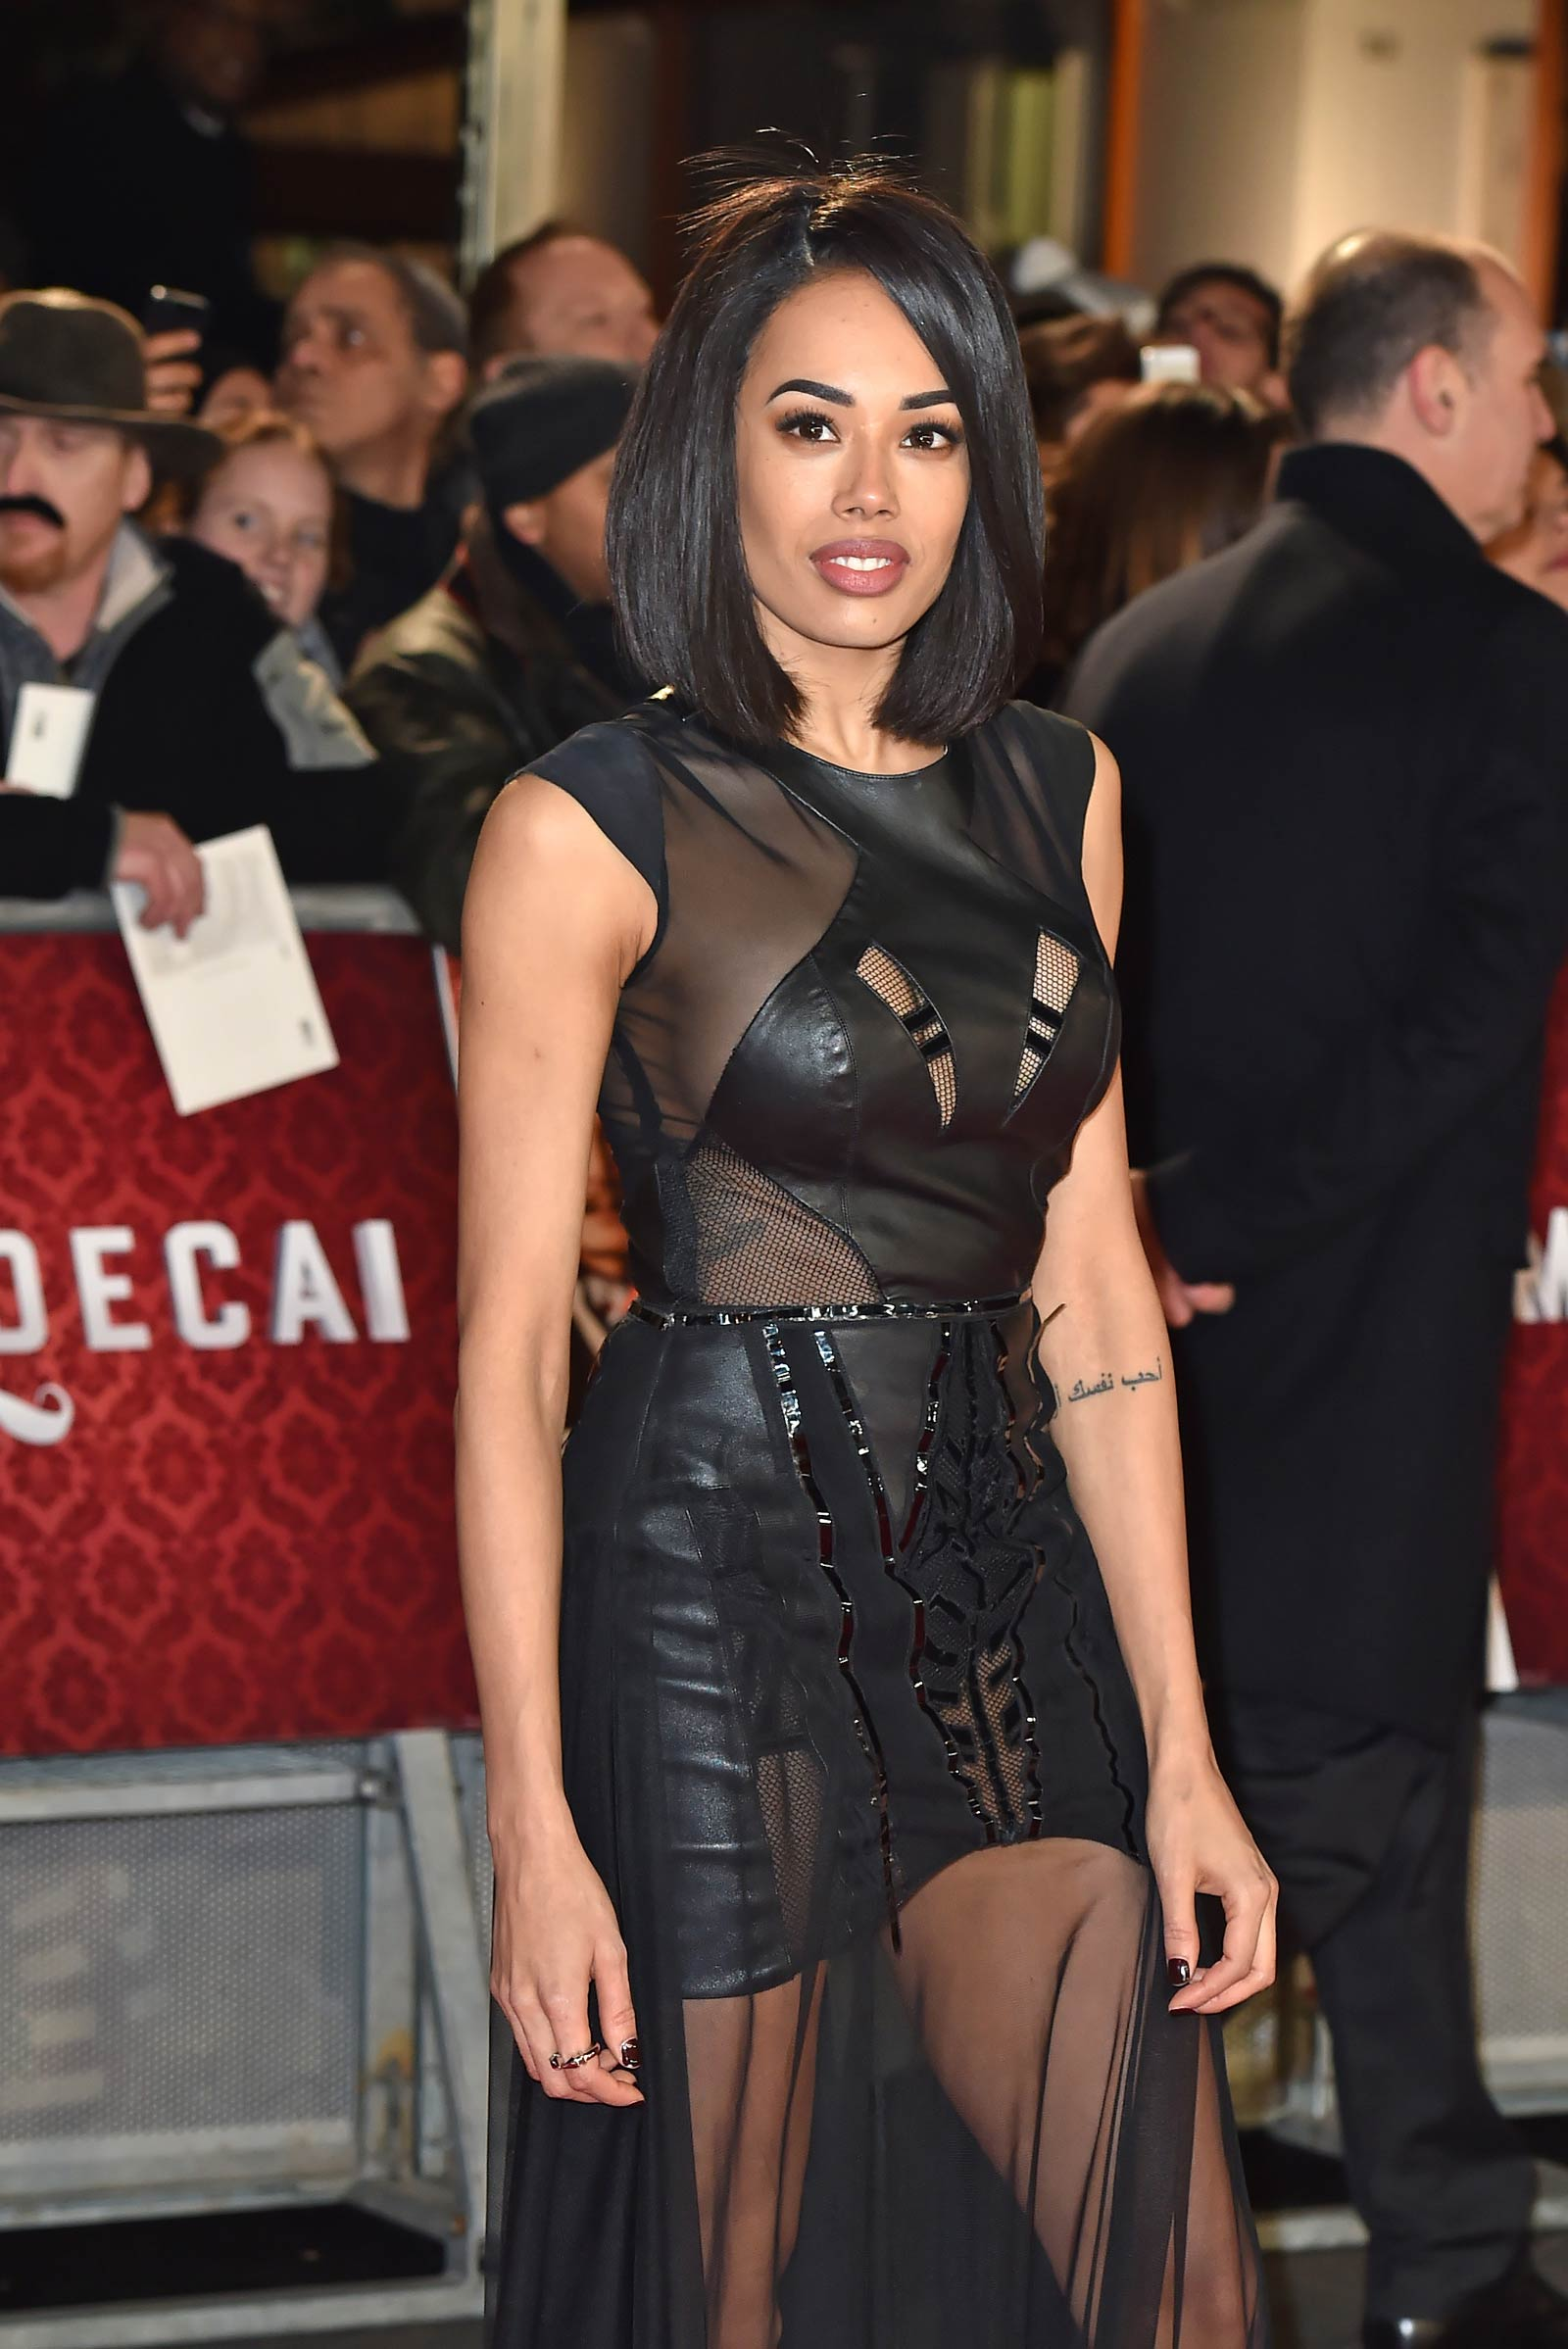 Jade Ewen attends Mortdecai London premiere